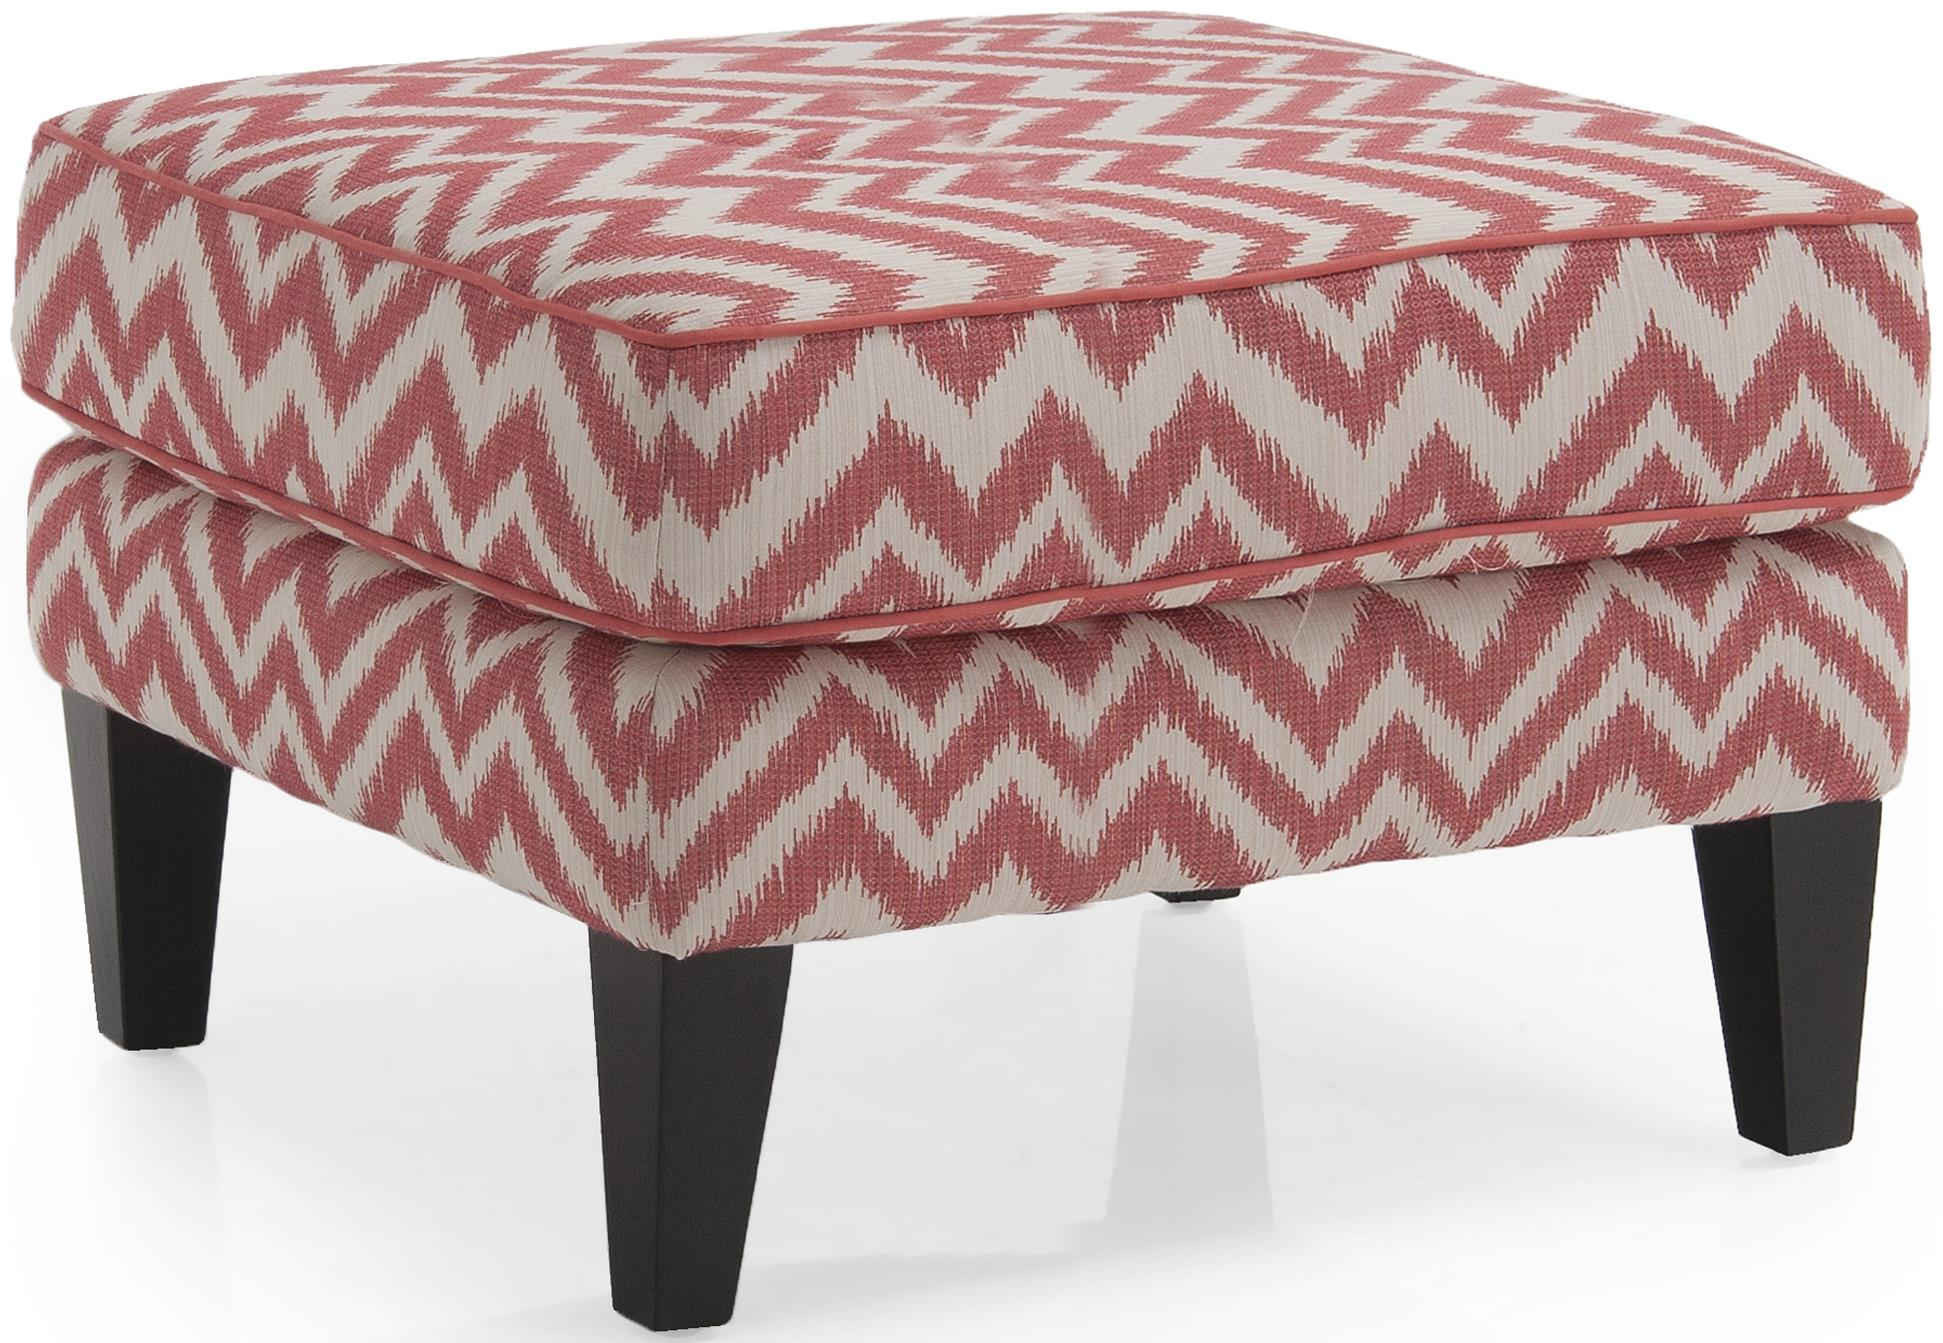 2468 Ottoman by Decor-Rest at Rooms for Less